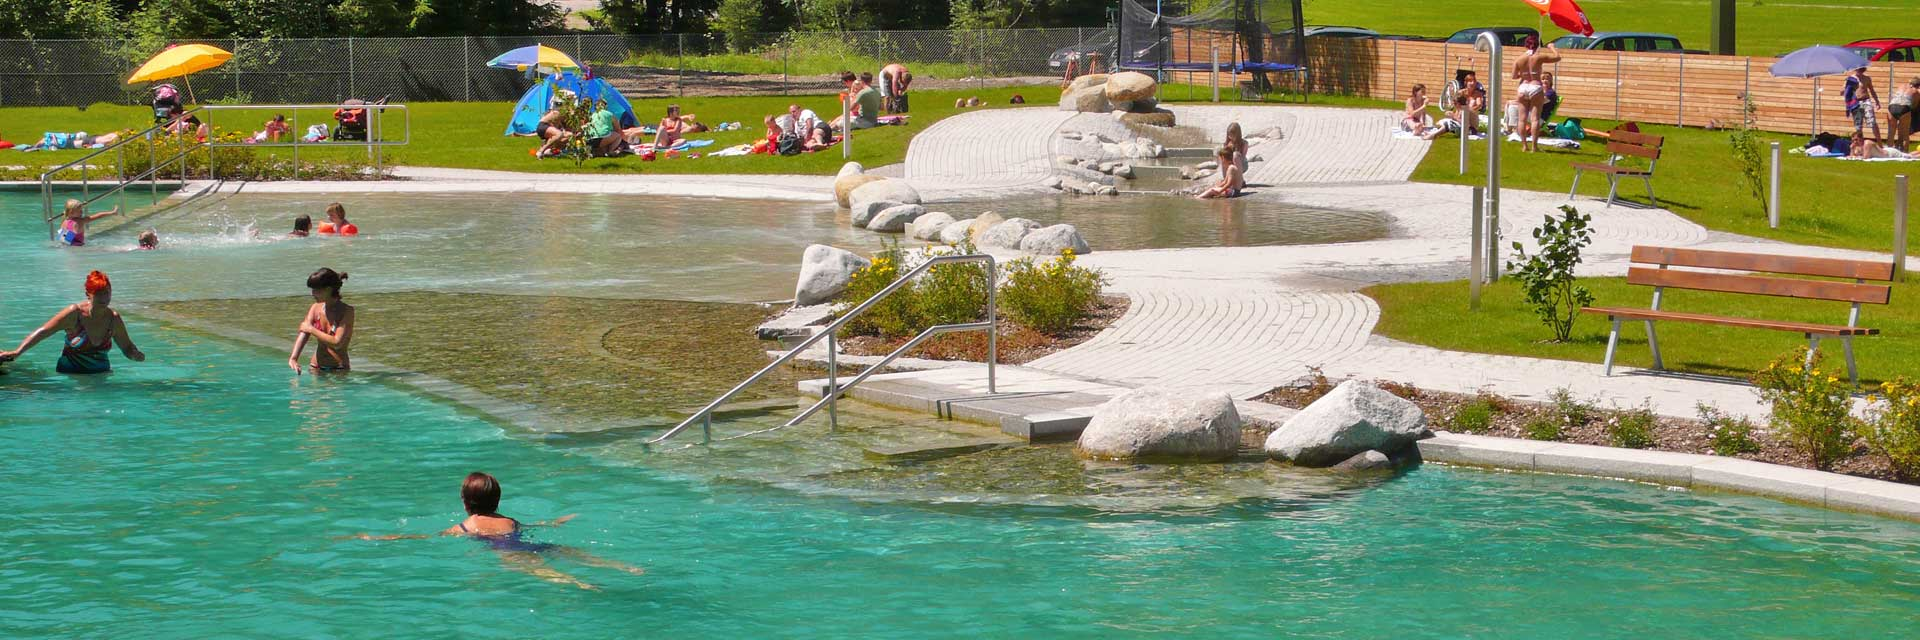 Best badolino lechtal with pool hornbach - Gunstige pools zum eingraben ...